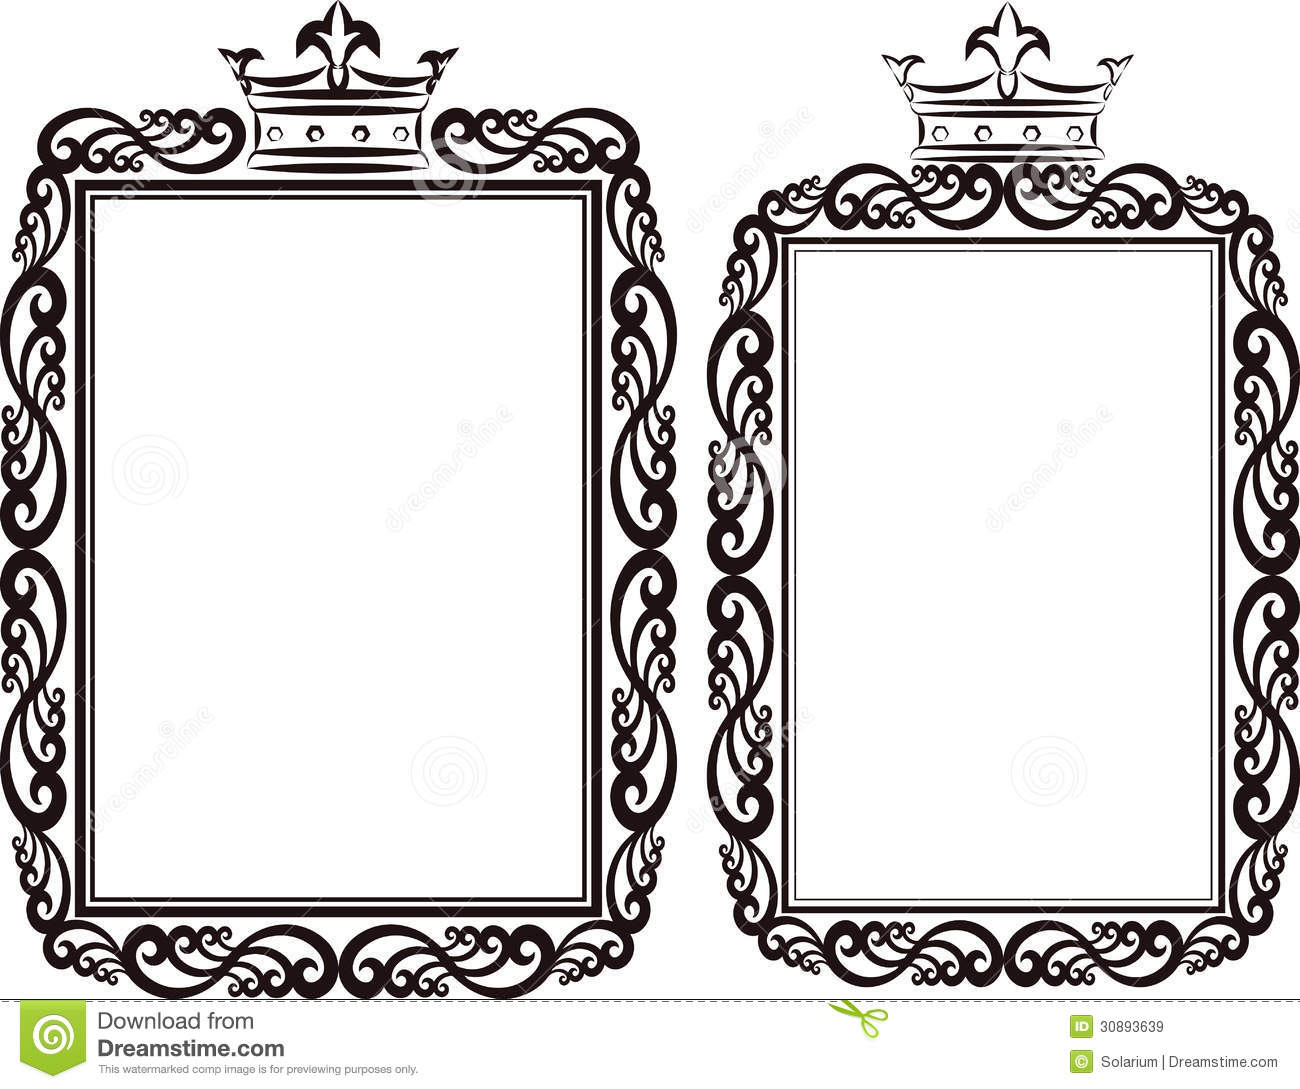 royal borders clipart clipart suggest